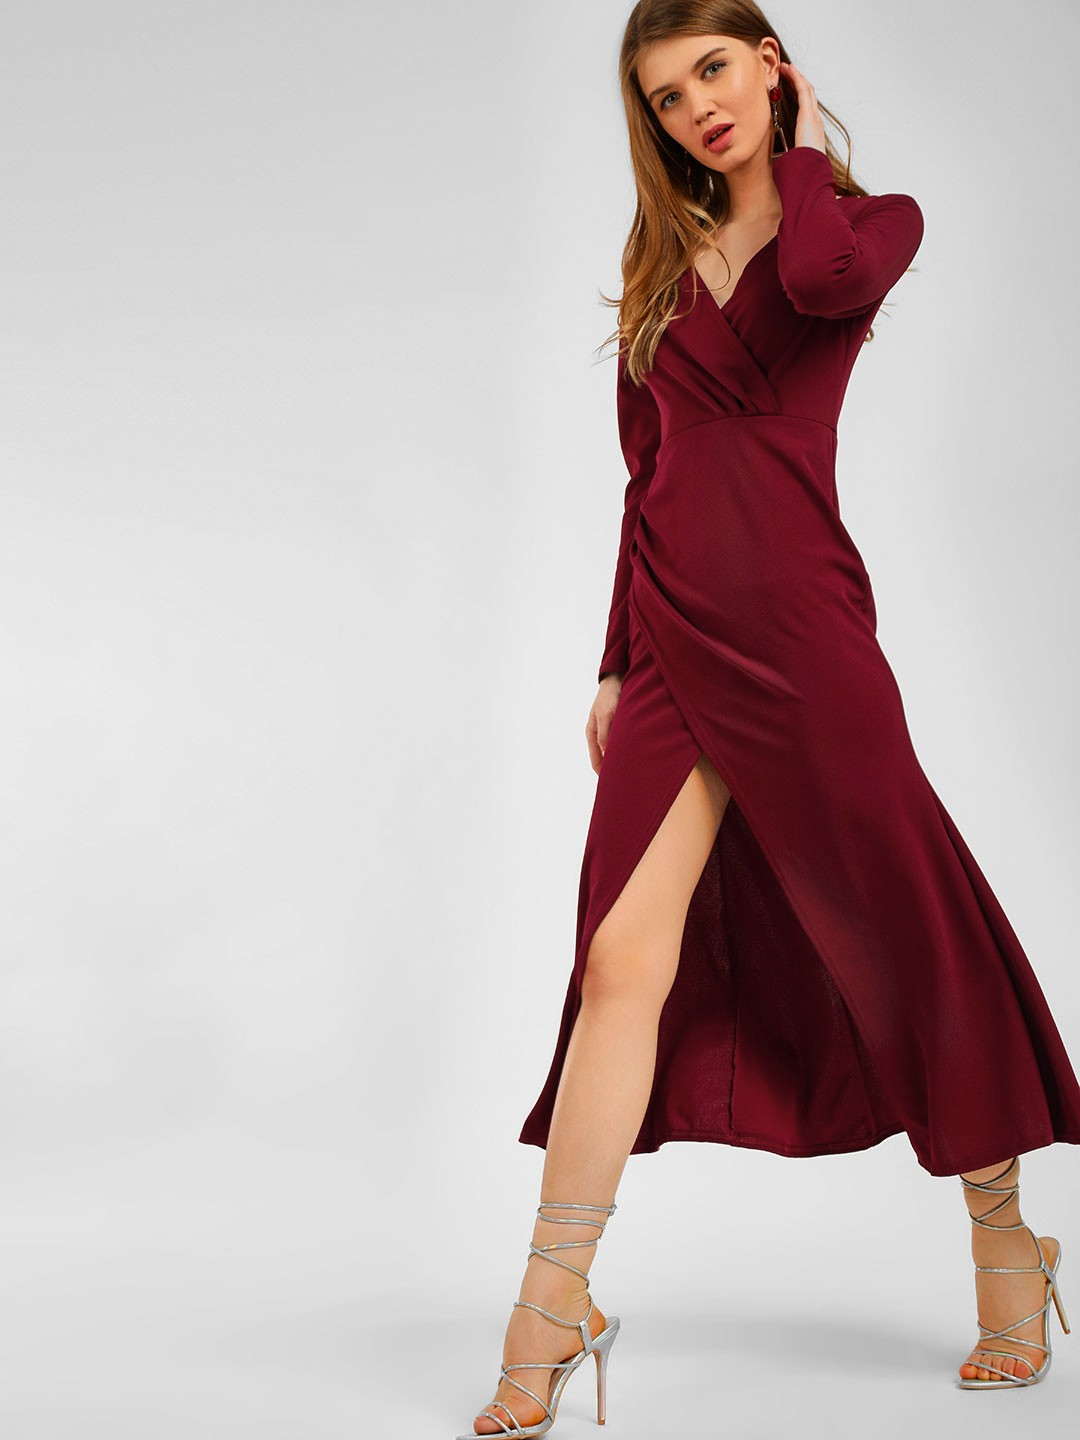 Origami Lily Maroon Front Wrap Midi Dress 1